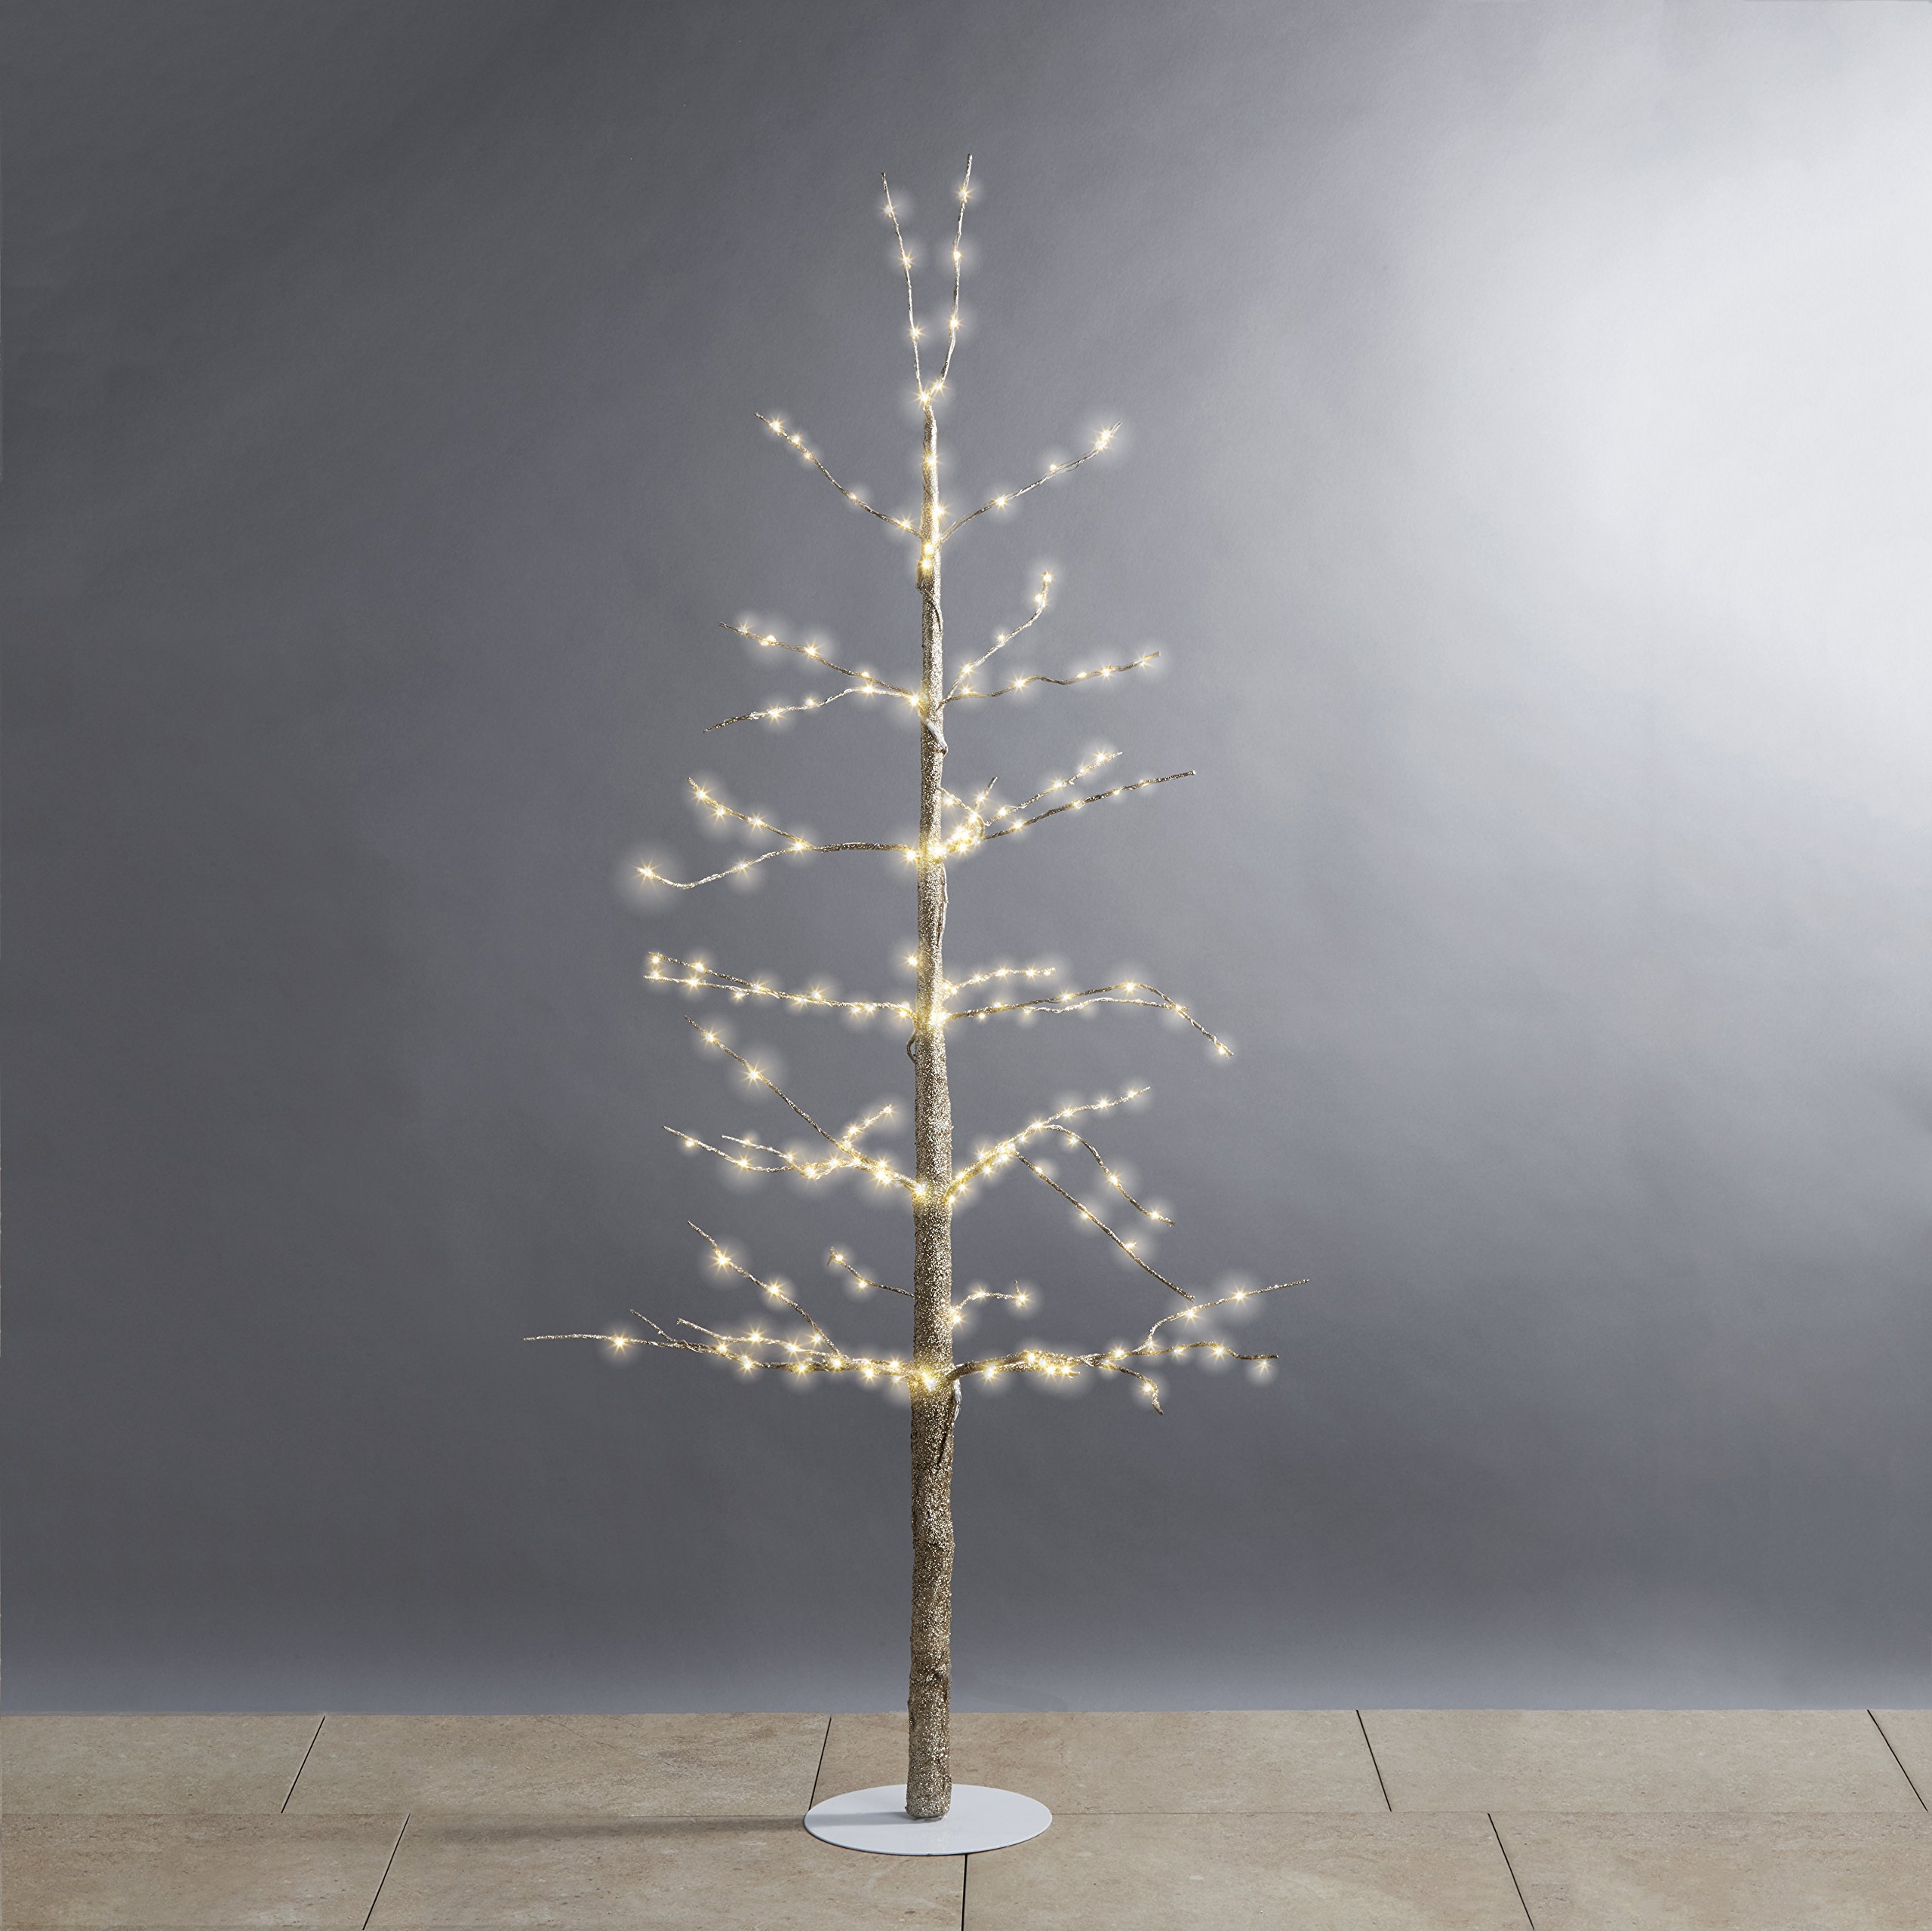 LampLust Pre-Lit Gold Christmas Tree - 4 Ft. Glitter Tree with 228 White LED Fairy Lights, Bendable Branches, Indoor Use, Plugin, Holiday Decor